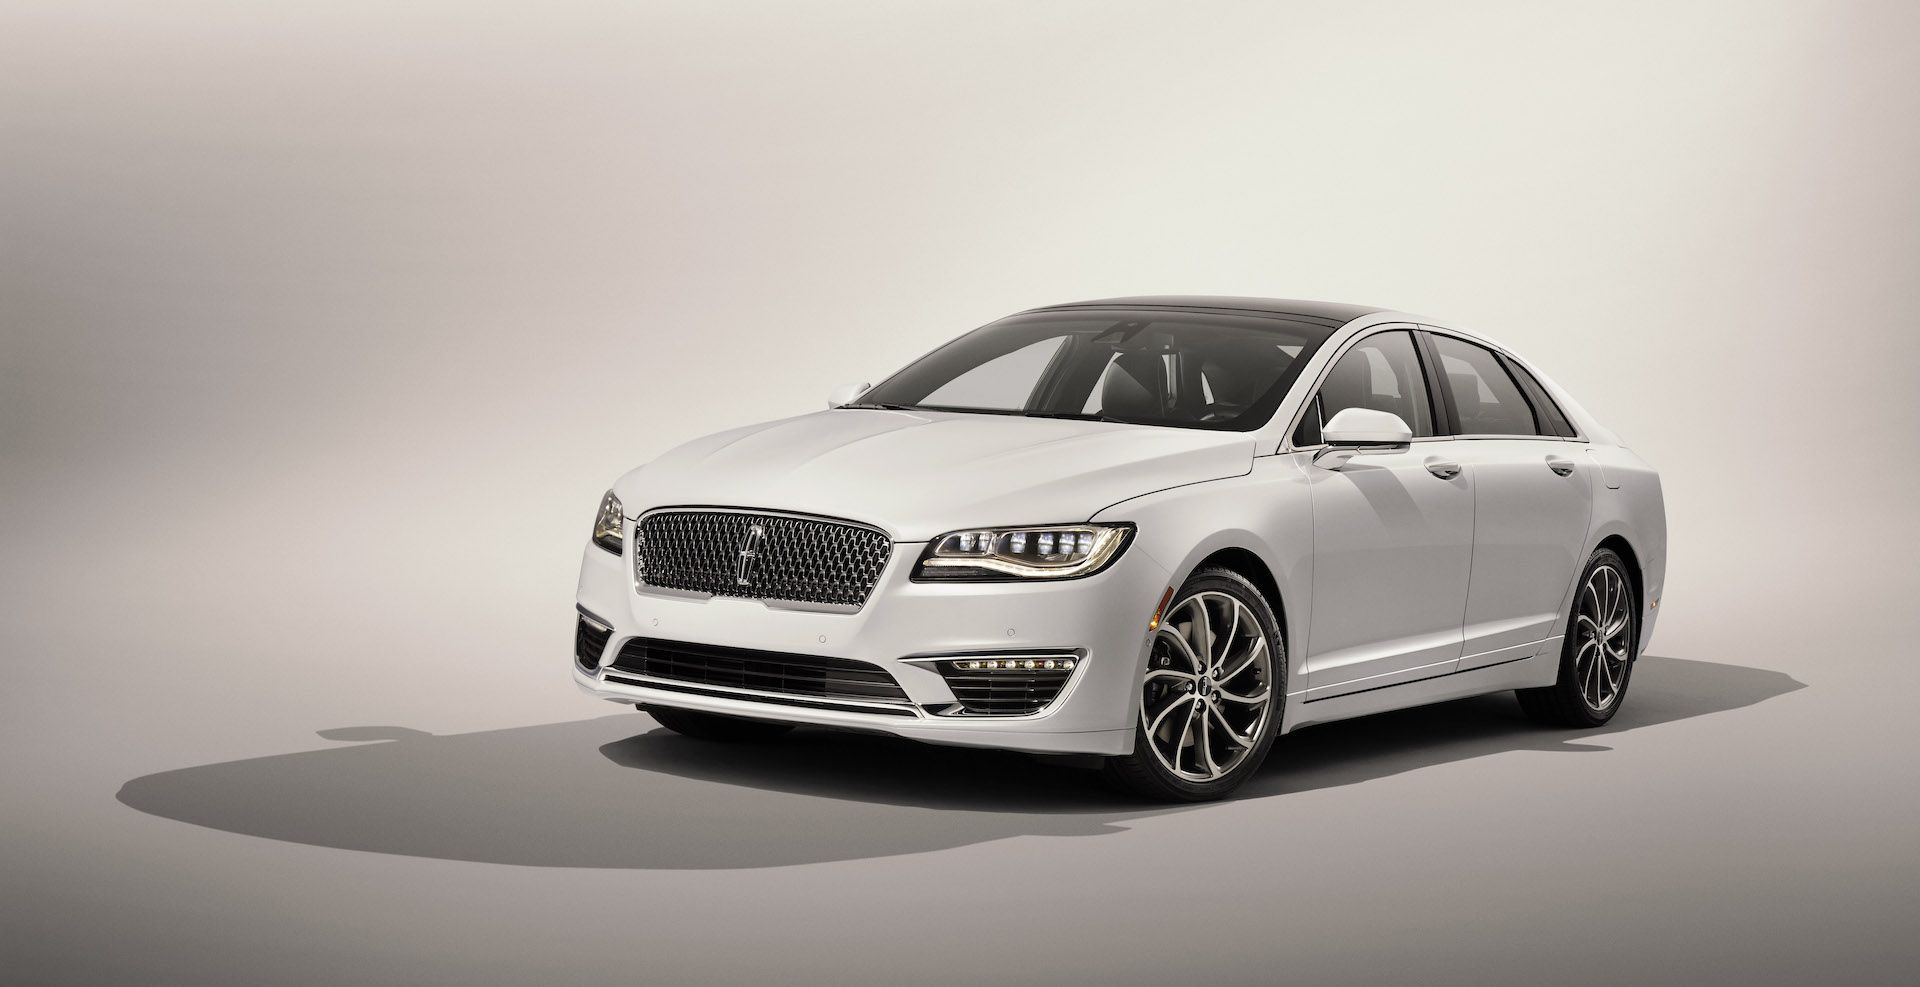 2020 Lincoln MKS Spy Photos Overview